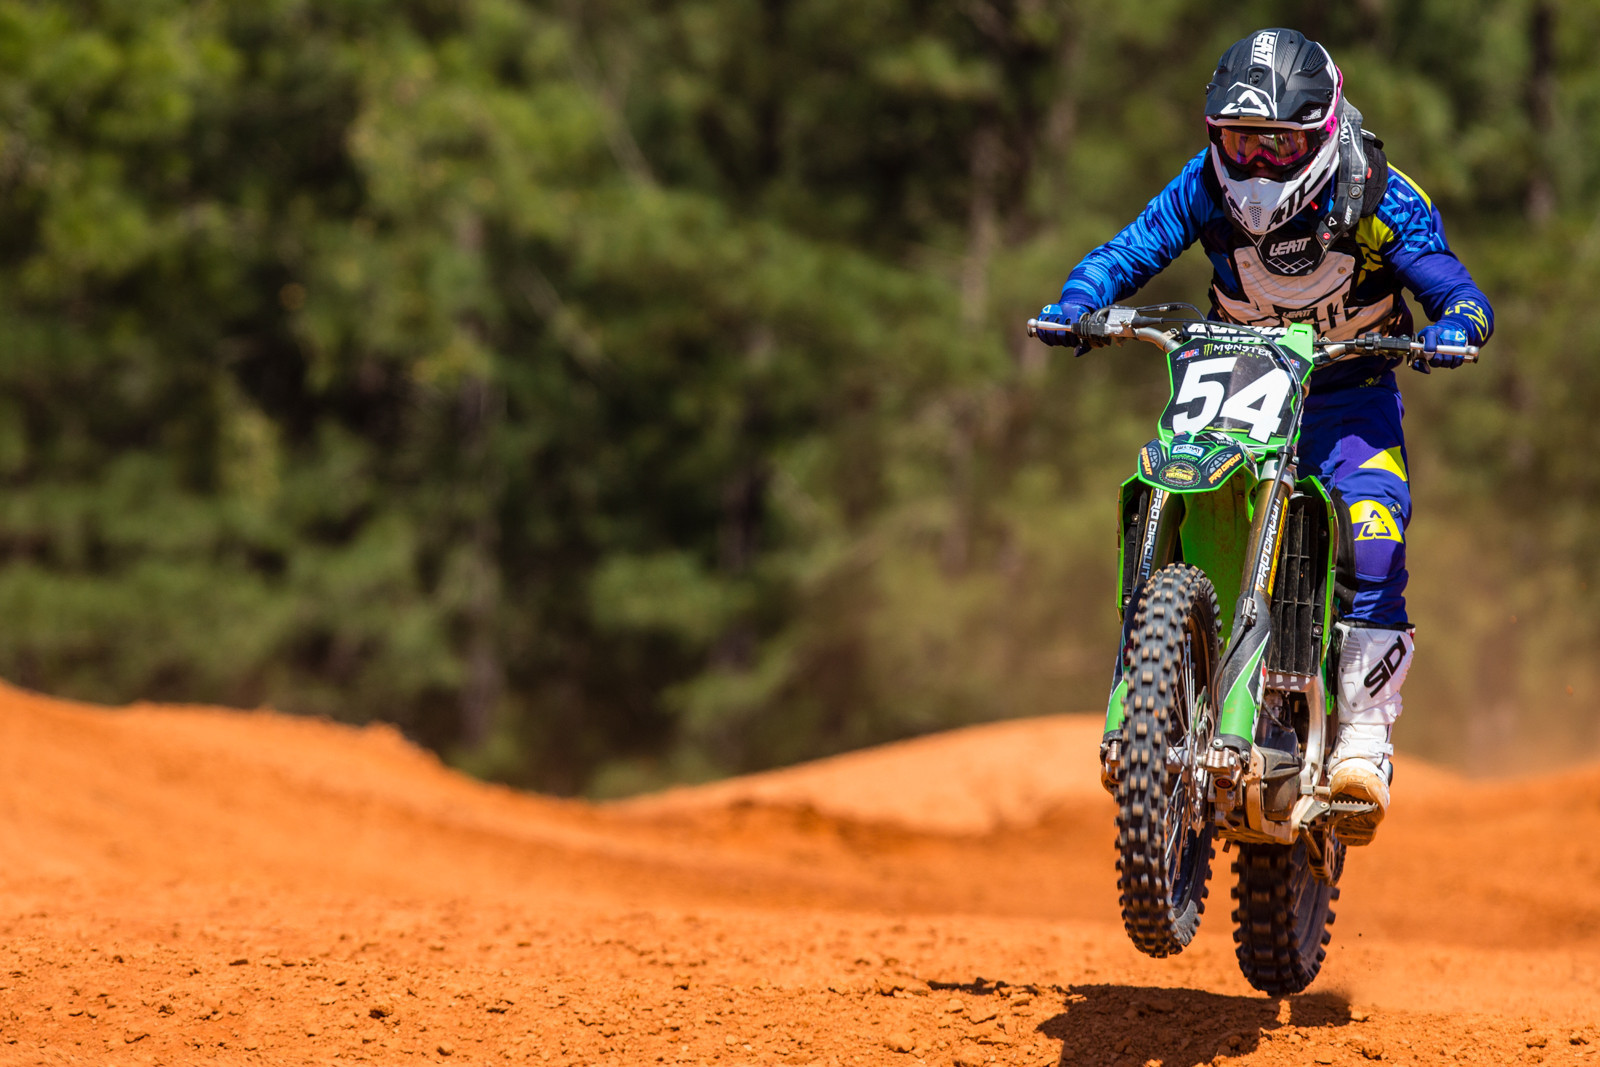 Gannon Audette Steps Away from Professional Racing